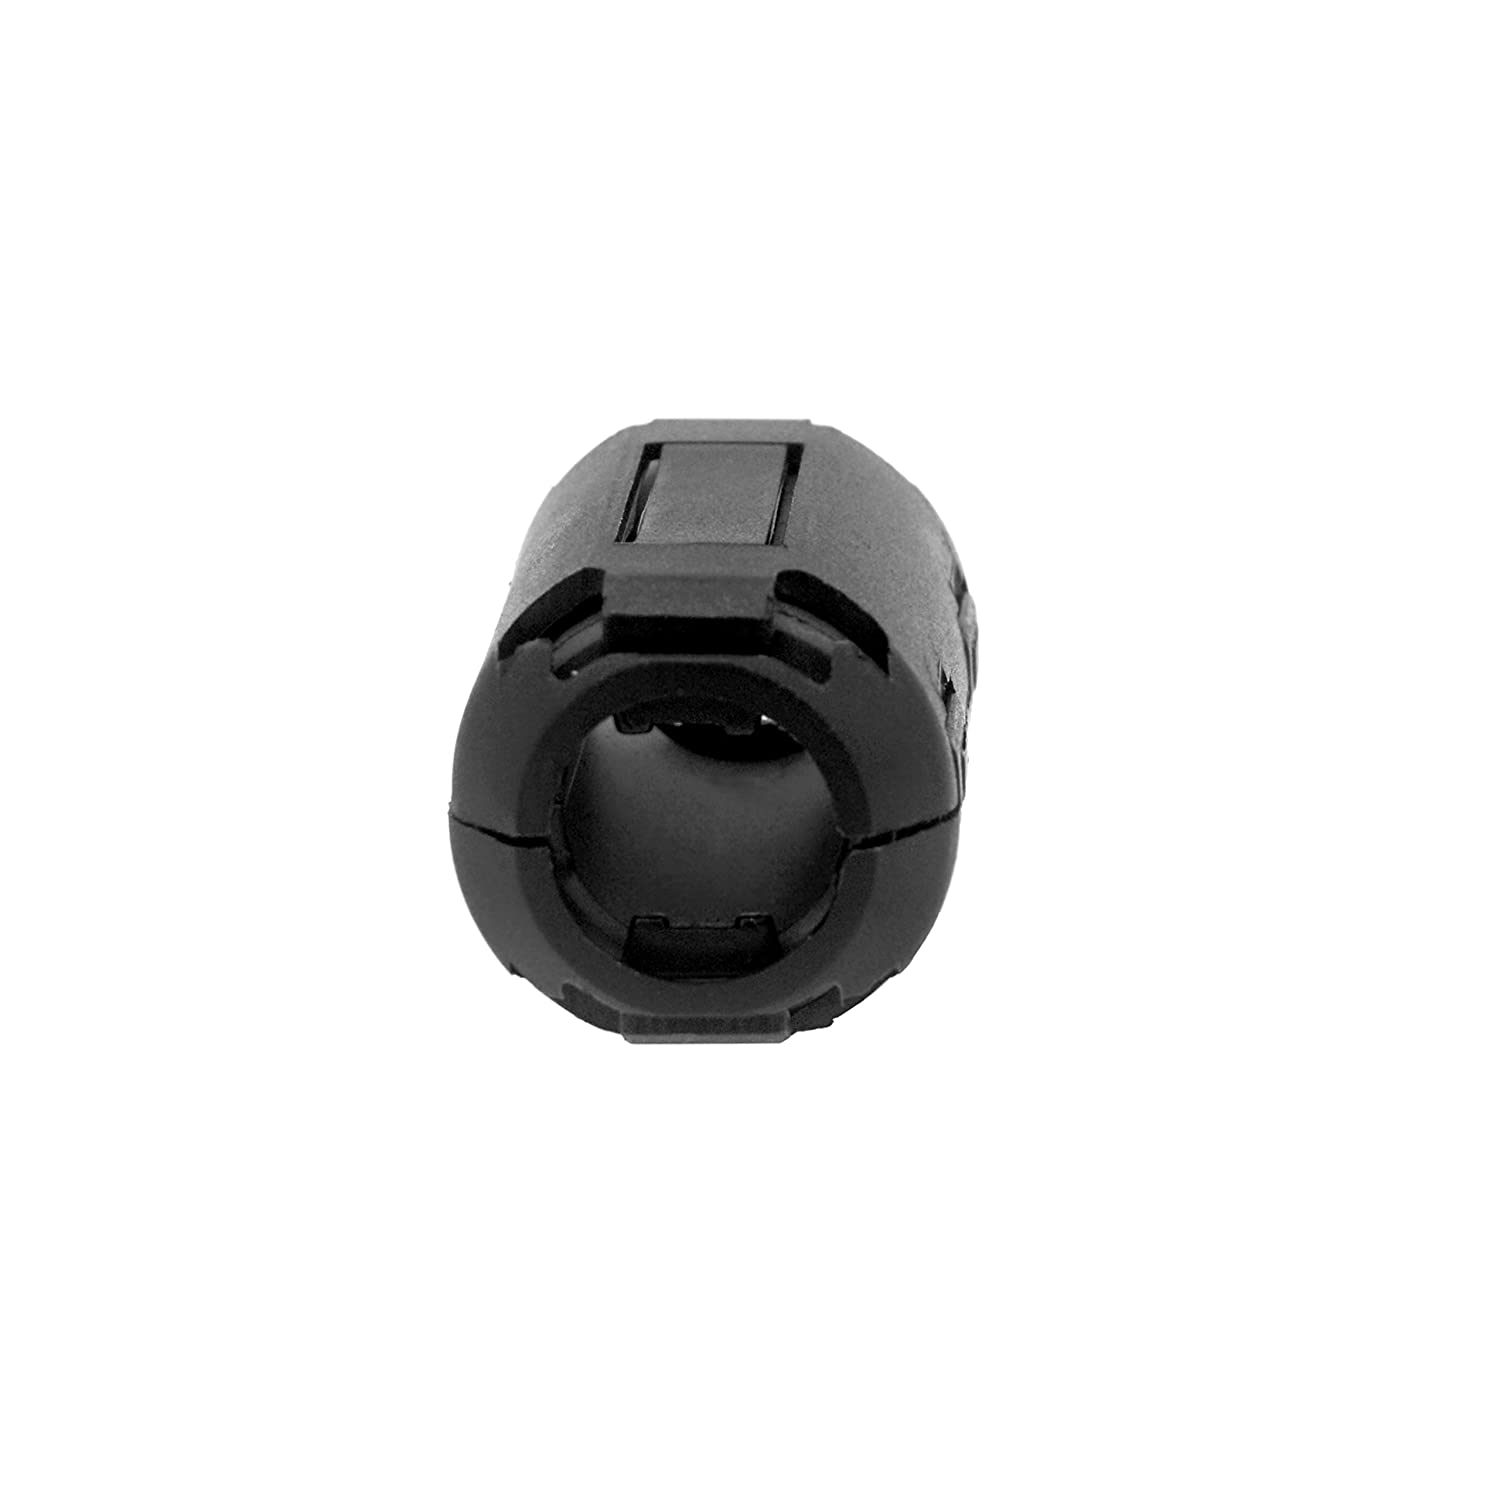 3.5mm// 5mm// 7mm// 9mm// 13mm Diameter 30PCS Clip-on Ferrite Core Ring Bead Anti-Interference High-Frequency Filter RFI EMI Noise Suppressor Cable Clip for USB//Audio//Video Cable Power Cord